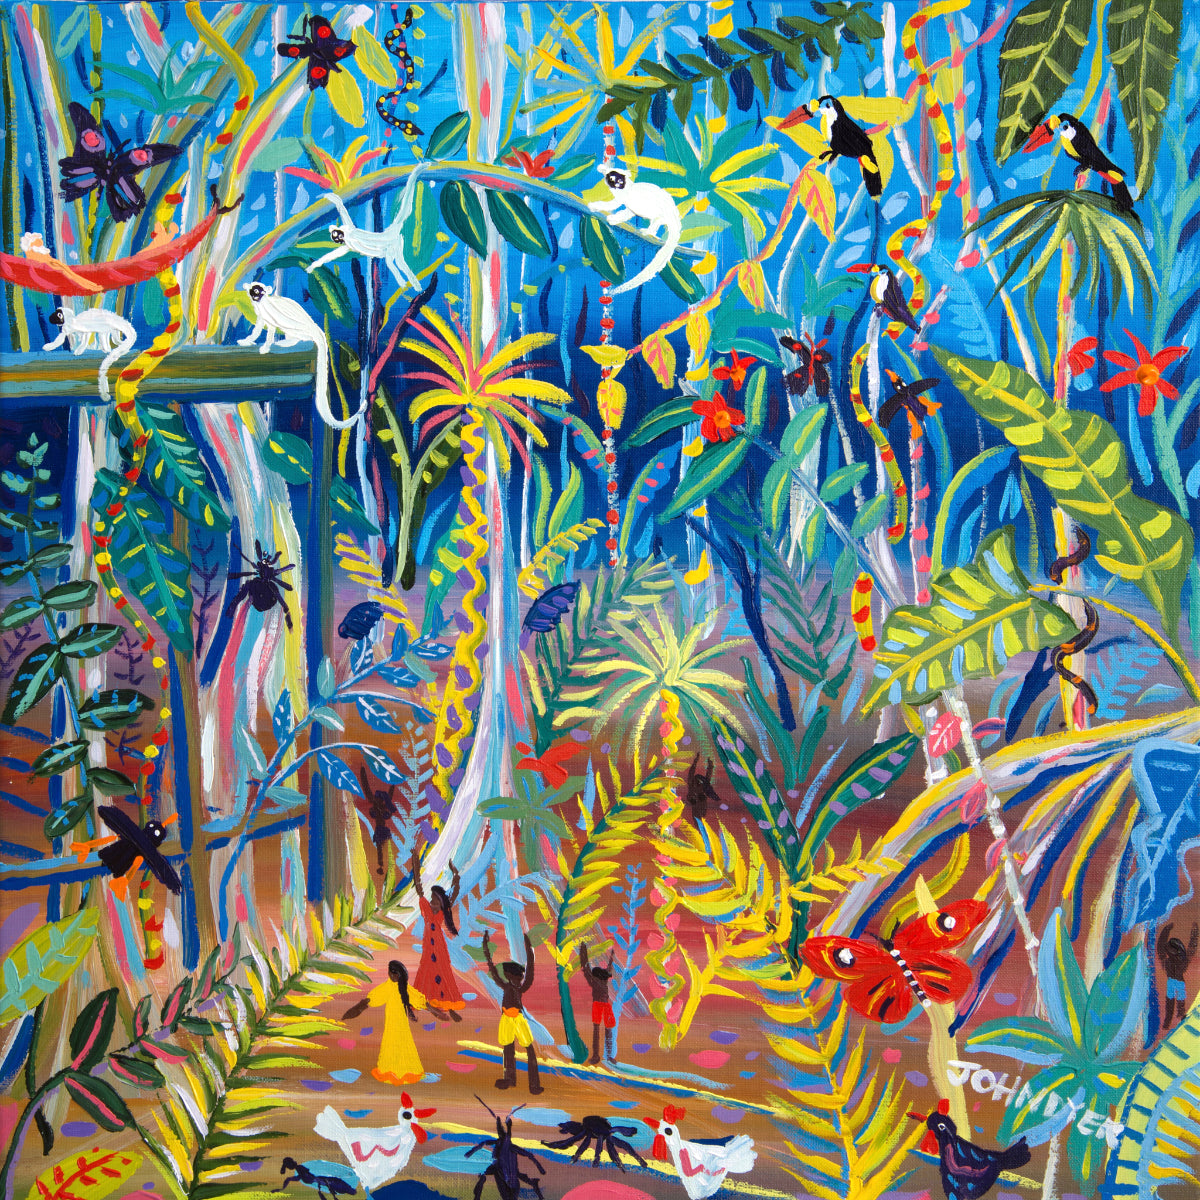 John Dyer Painting. Yawanawá Amazon Rainforest Tree House